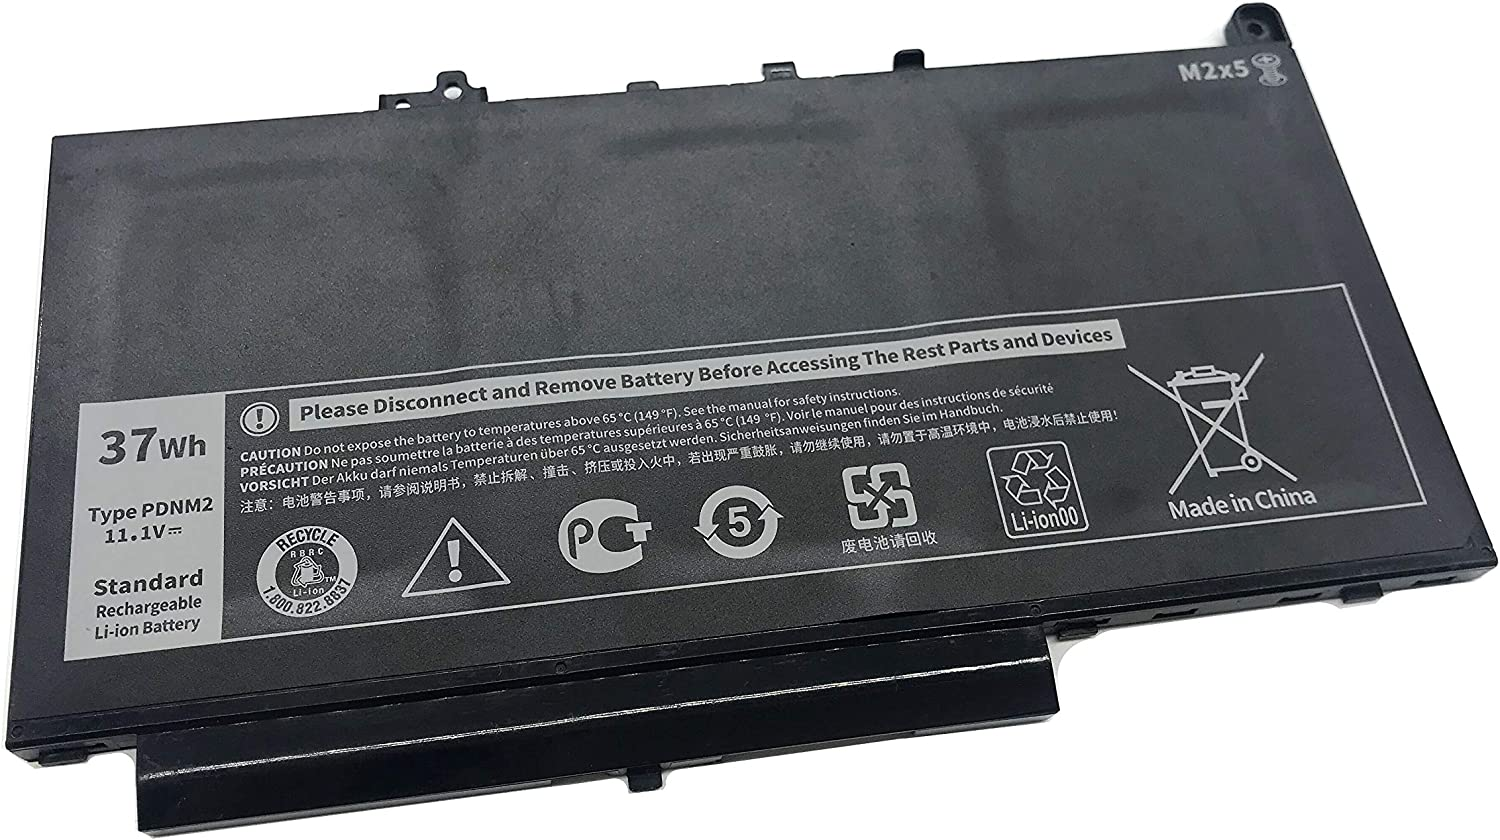 Aluo PDNM2 11.1V 37Wh Replacement Laptop Battery for Dell Latitude E7270 E7470 Series Ultrabook Notebook 579TY F1KTM 0F1KTM V6VMN 0V6VMN 7CJRC 07CJRC